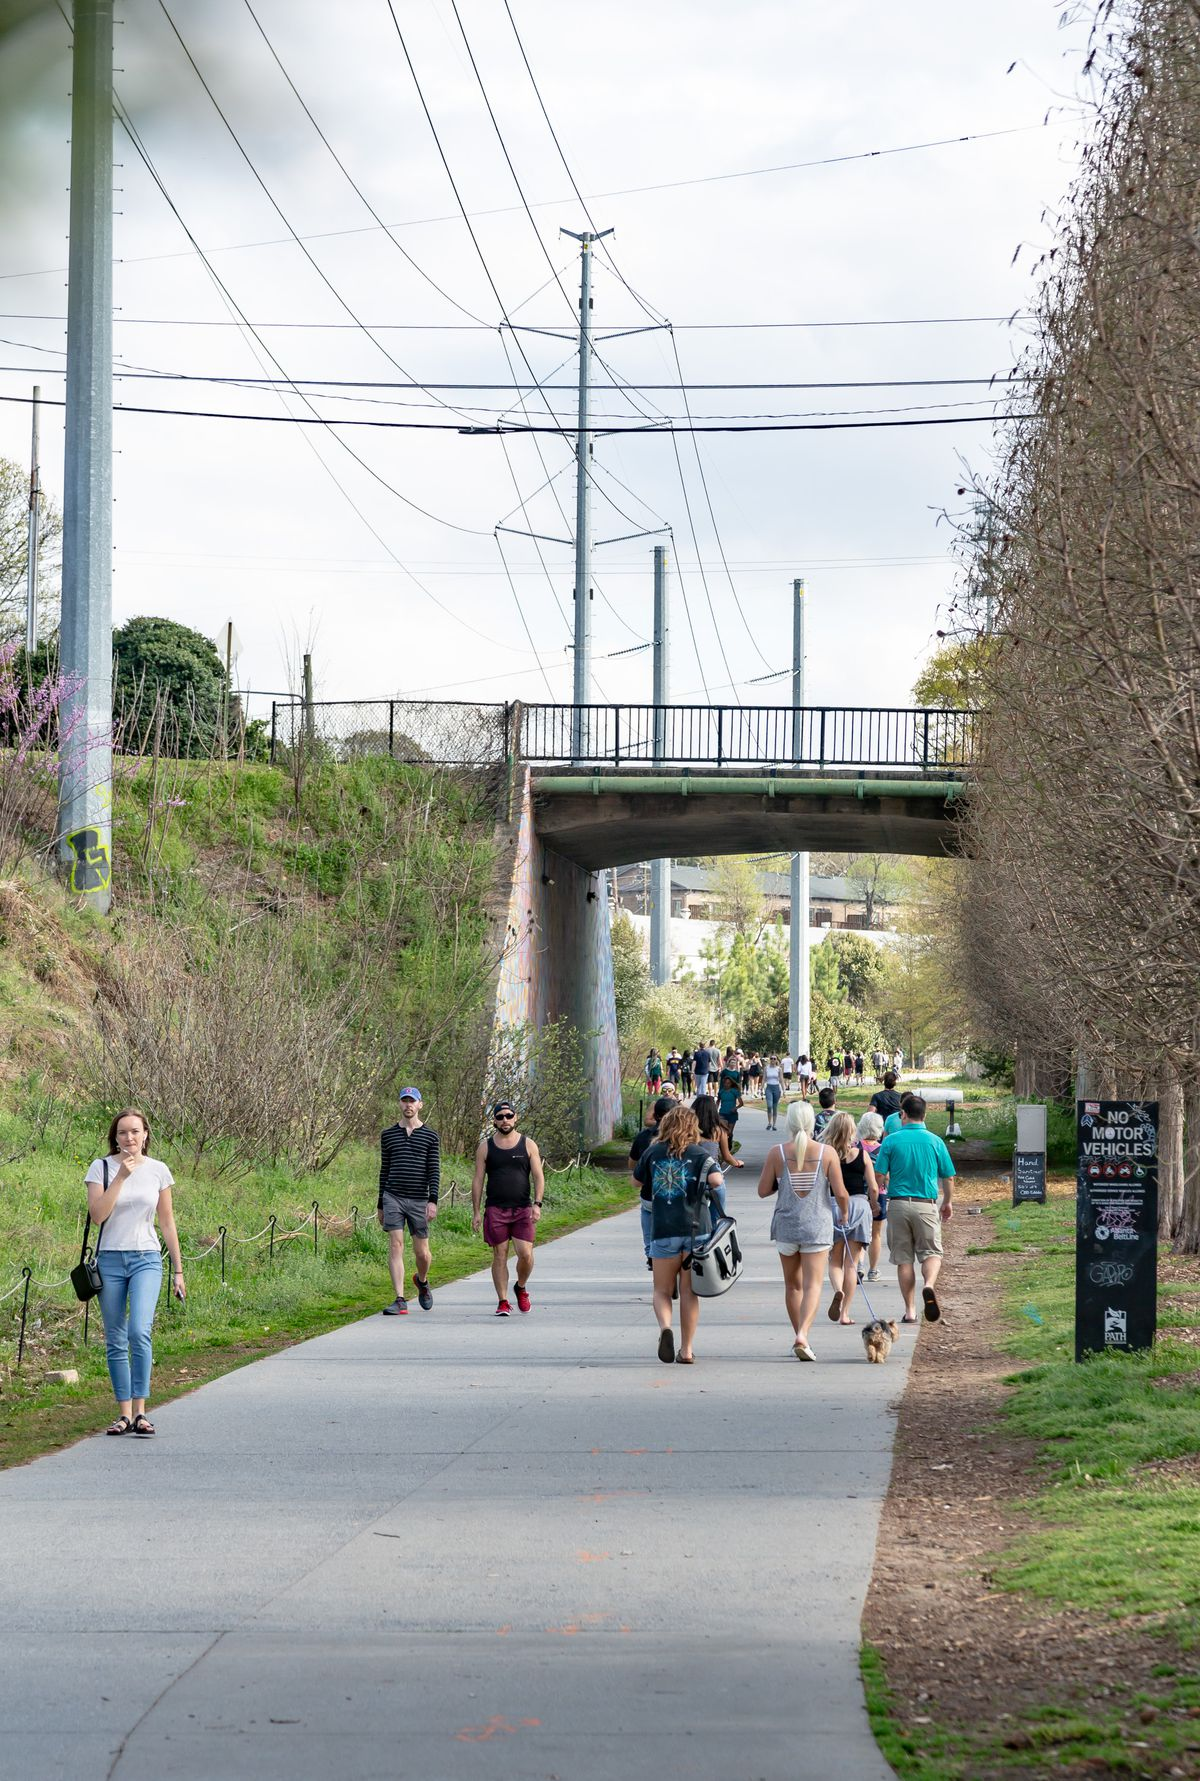 People walking the beginning at of the Eastside Beltline near the trail head at Monroe Drive march 21 amid COVID-19